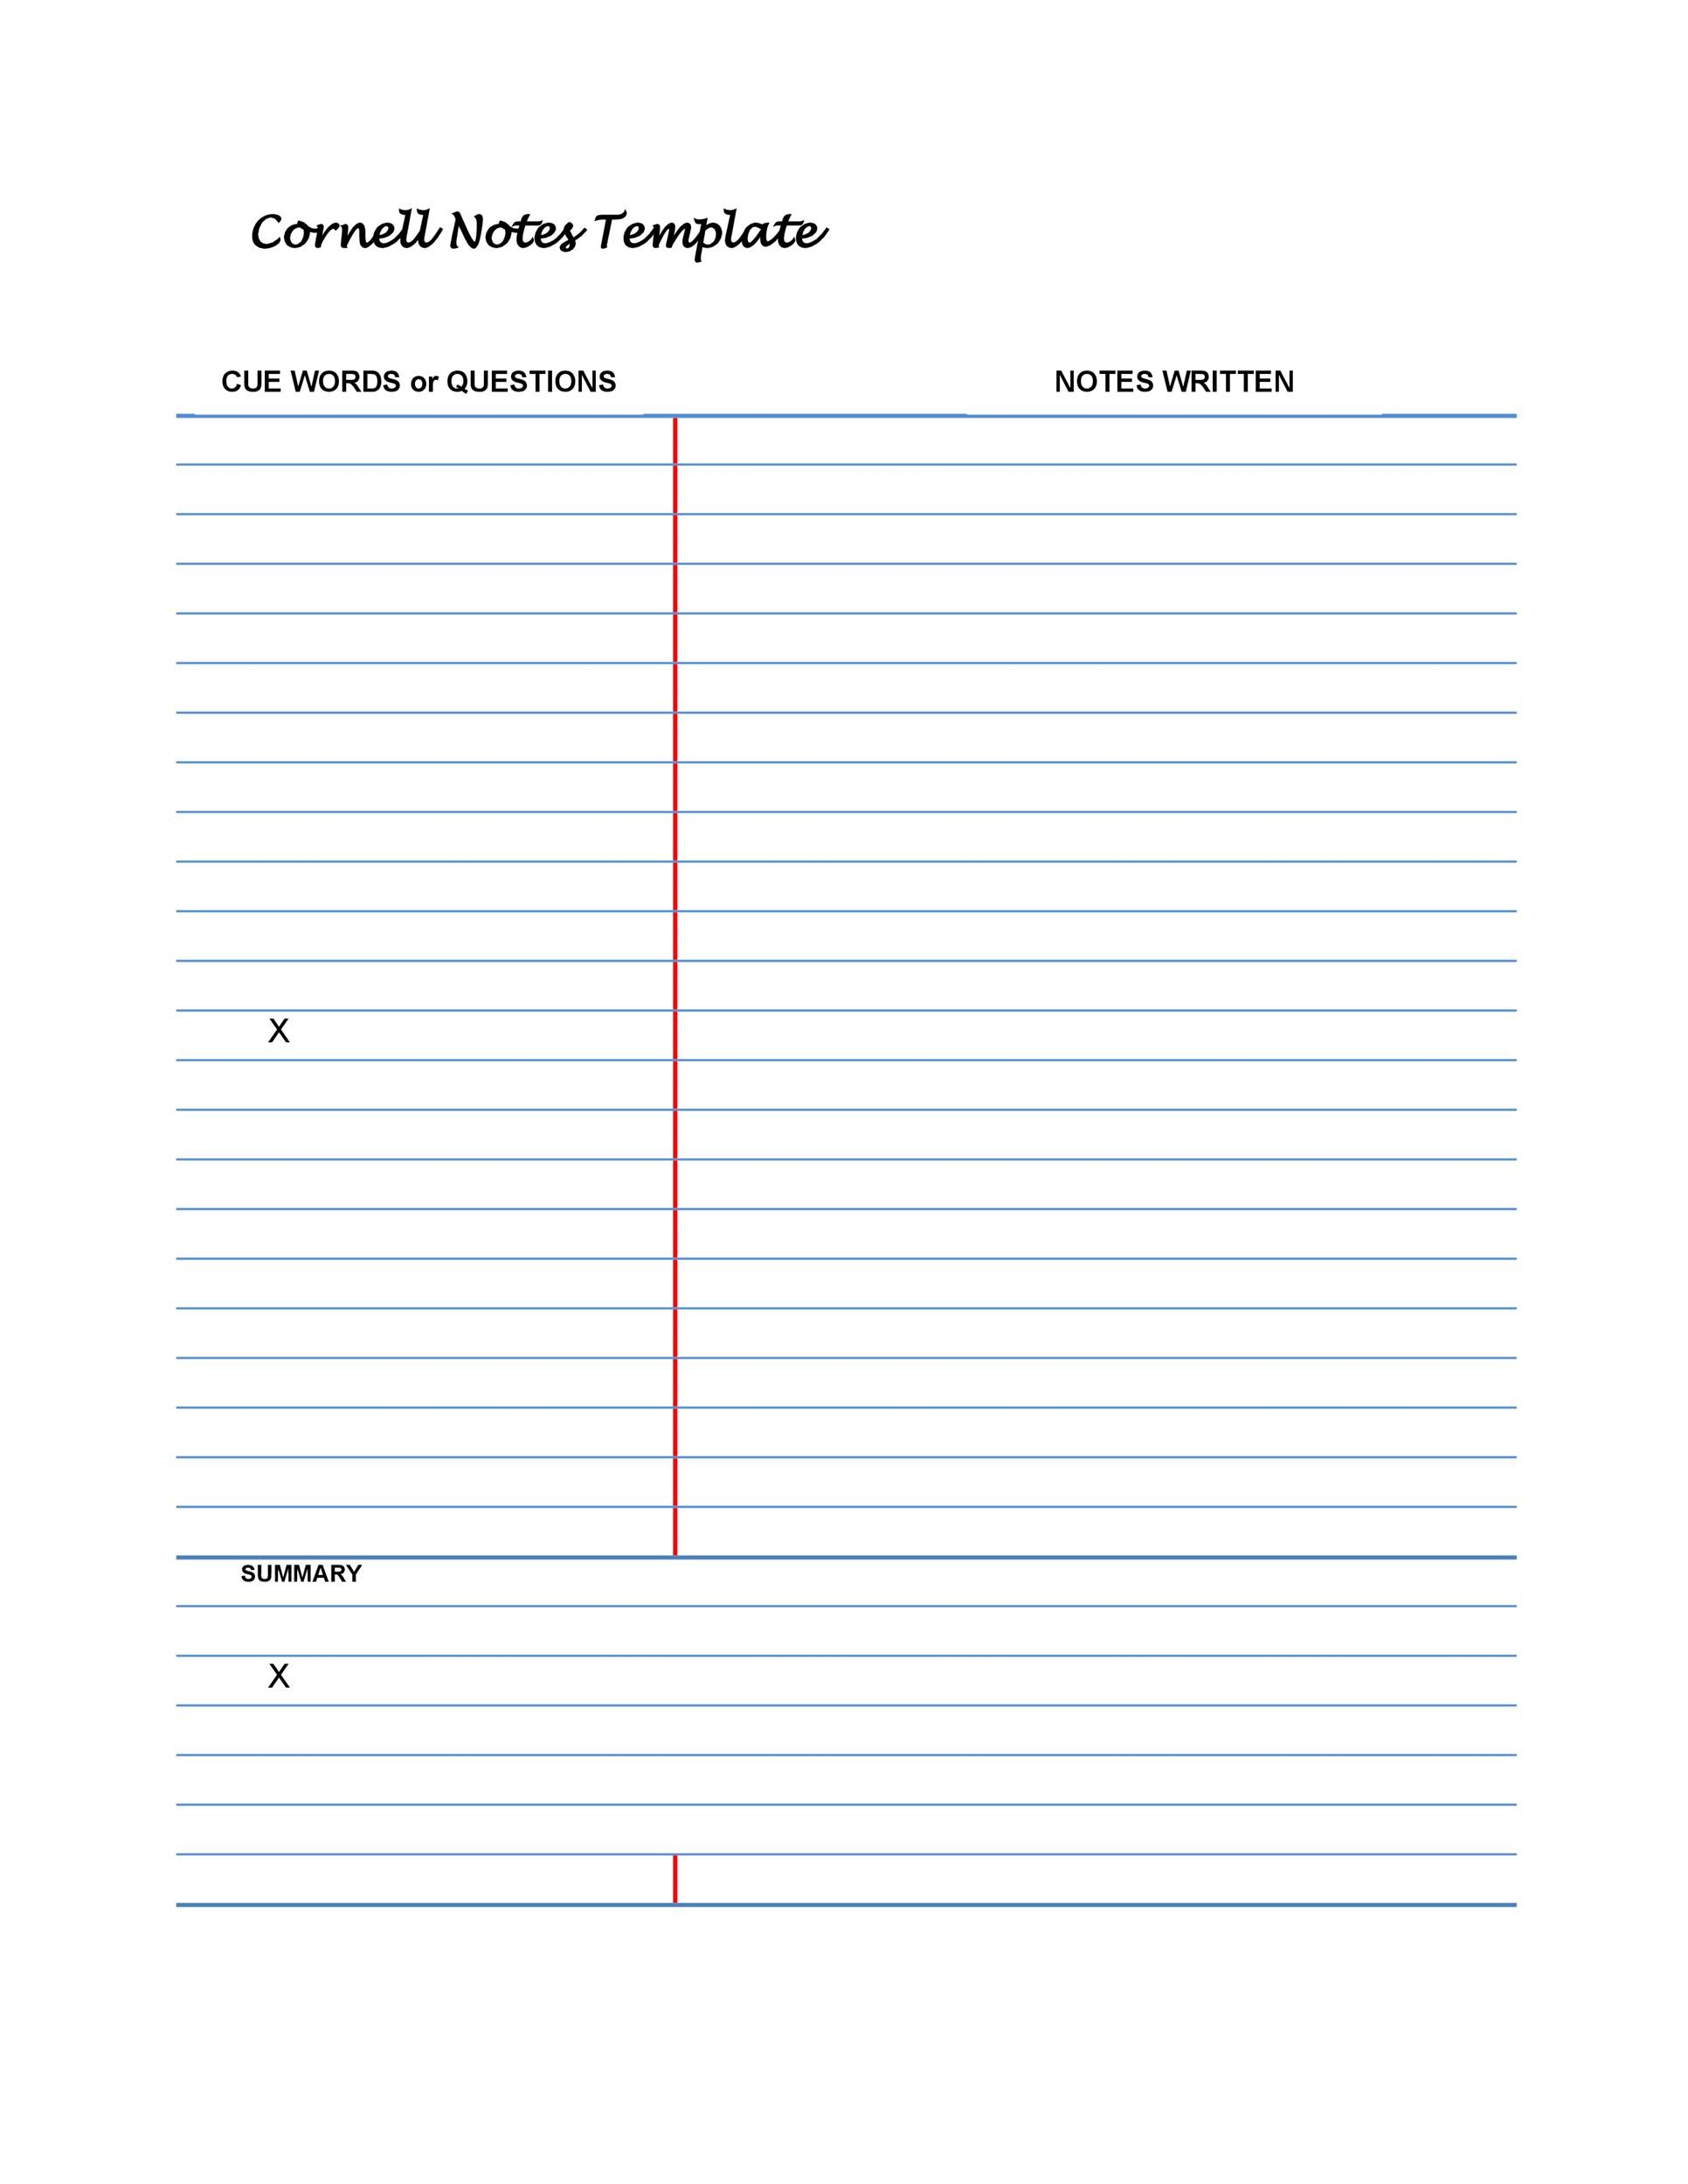 Free Cornell Notes Template 10